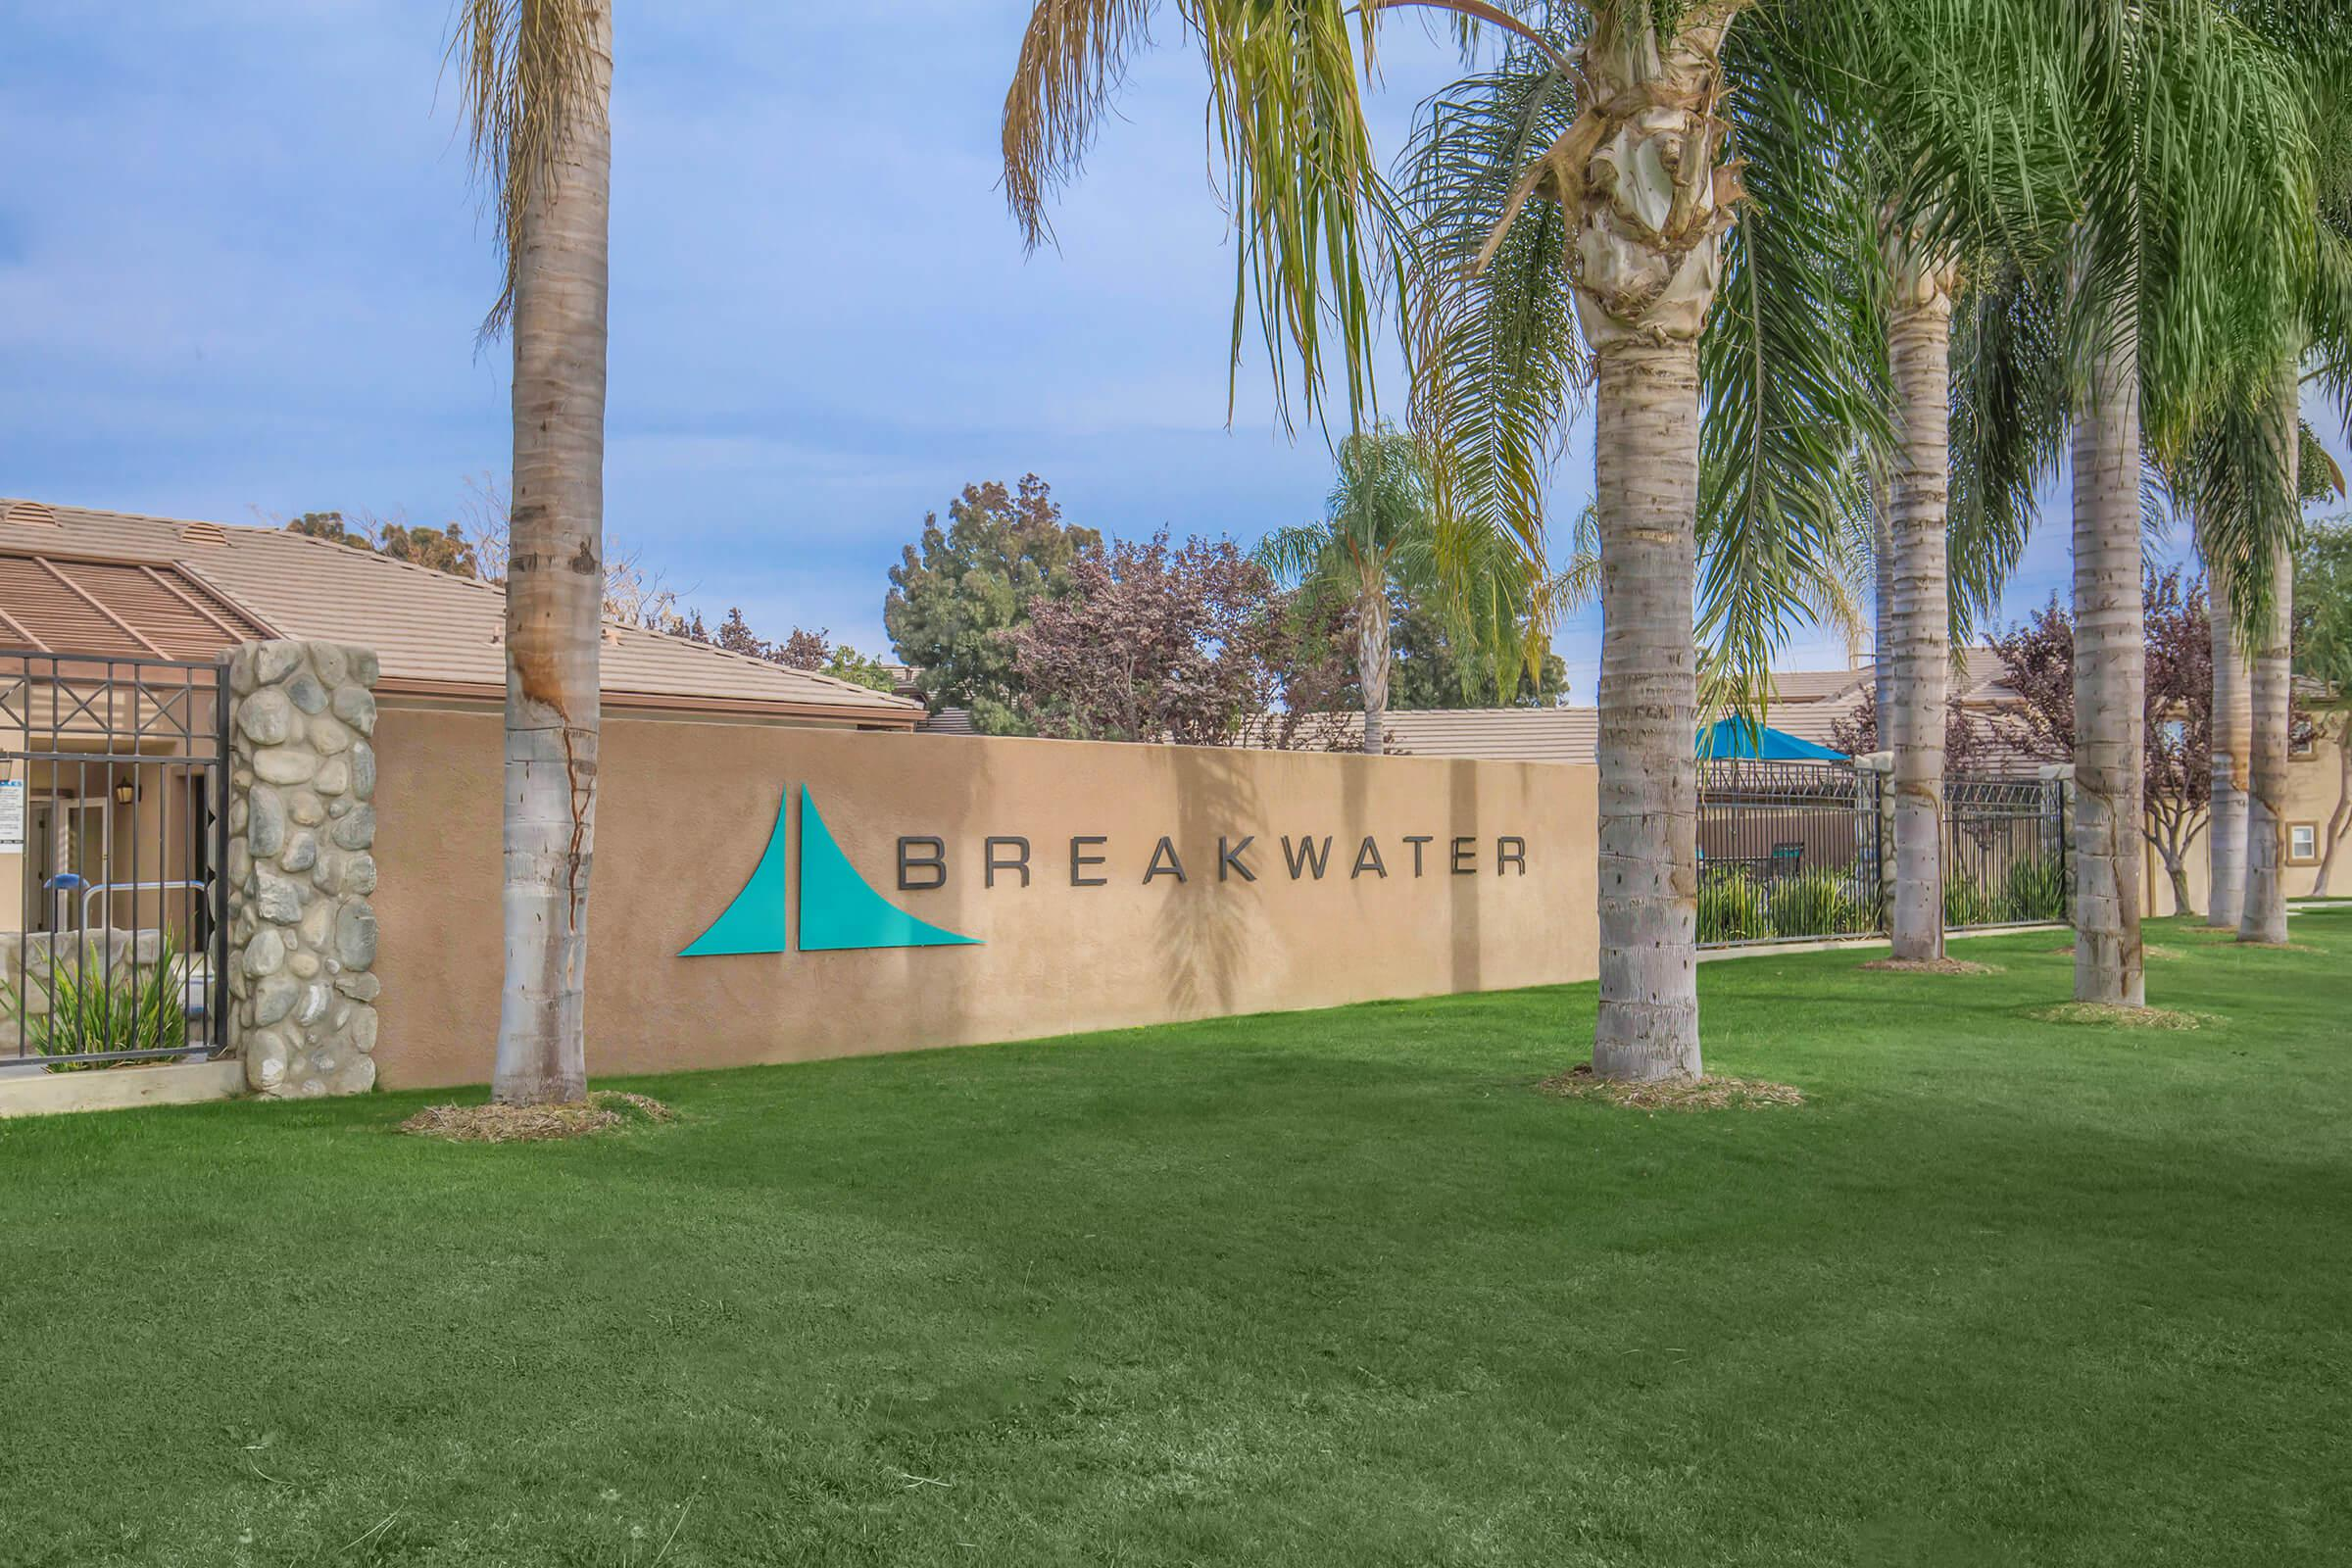 Breakwater Apartments monument sign